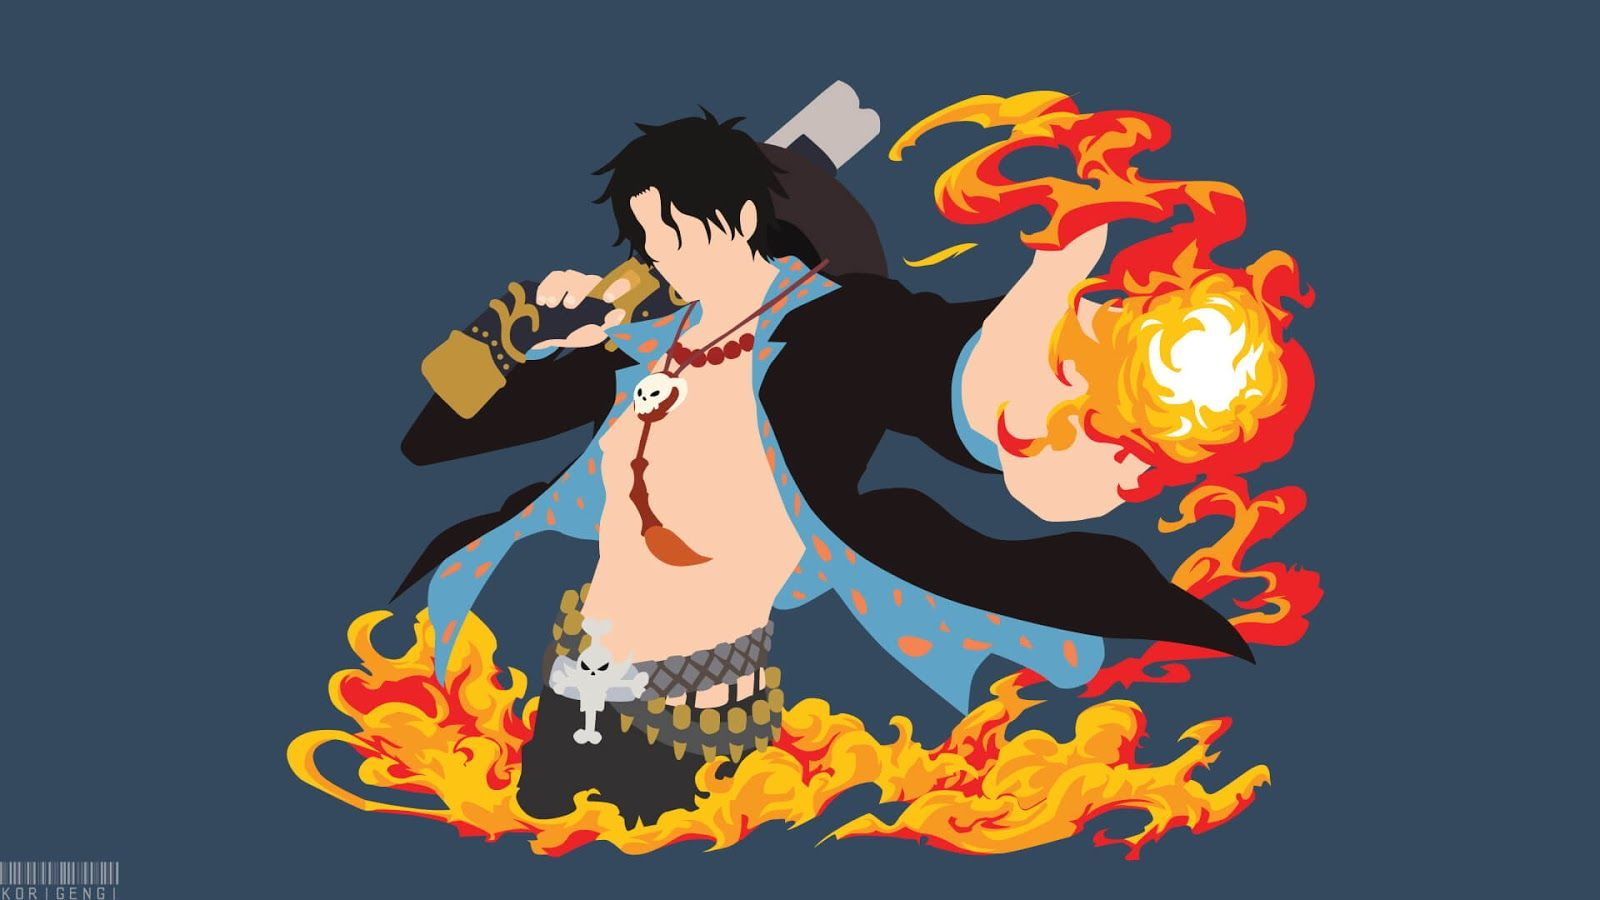 Turn gifs, videos, and other content into wallpapers. Pc Portgas D Ace Animasi Wallpaper Anime Gambar Anime